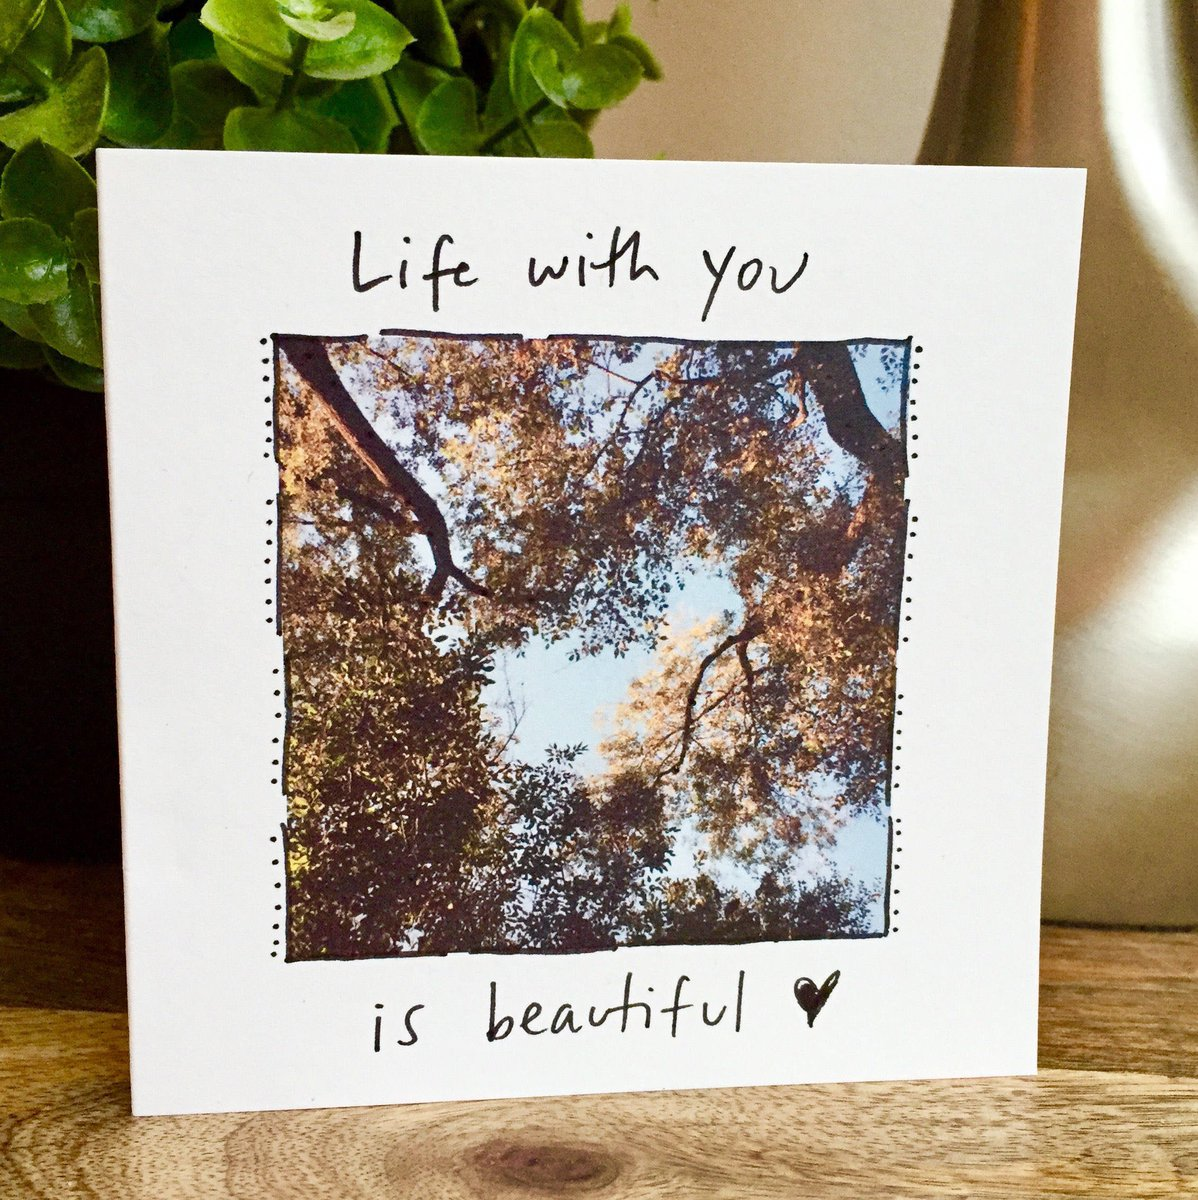 Excited to share the latest addition to my #etsy shop: Life is beautiful card, nature lover card, One Year Anniversary Card for husband, Paper Anniversary, anniversary card wife, 1st anniversary https://t.co/sESeSRcMoE #papergoods #naturelovercard #treecard #lifeisbeau https://t.co/e92dlmfci4